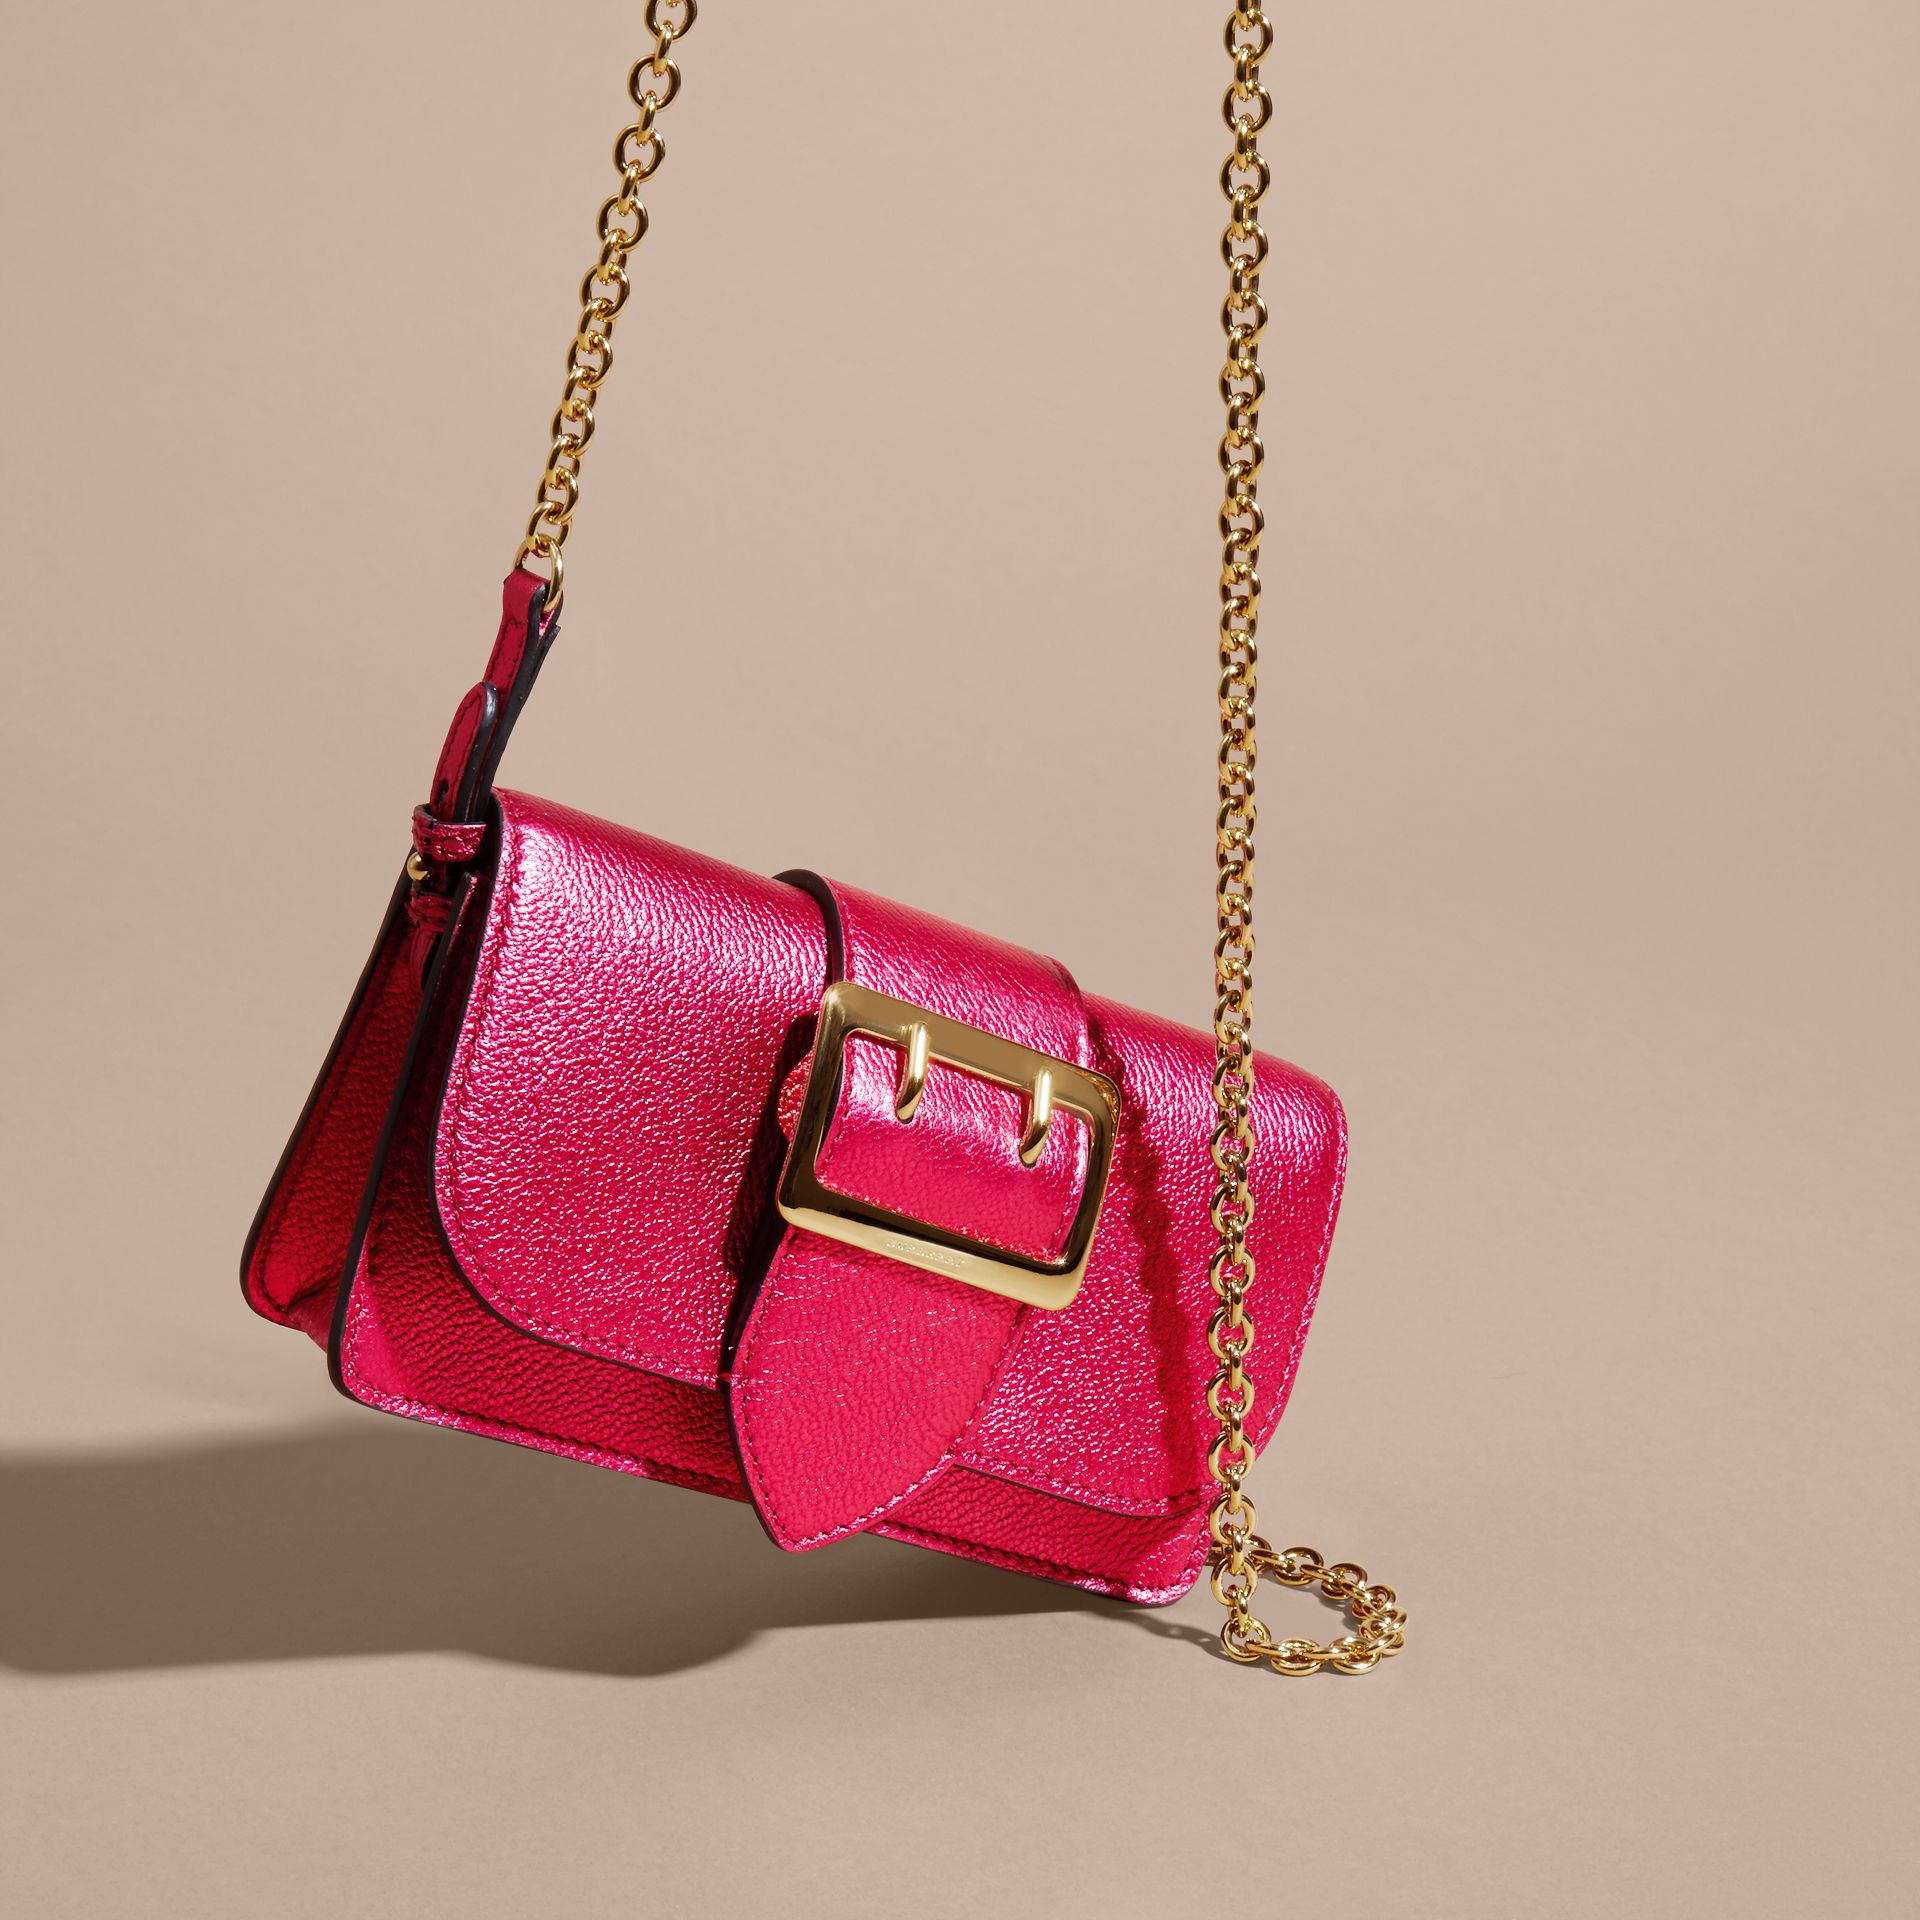 The Mini Buckle Bag in Metallic Grainy Leather in Bright Pink - gallery image 5